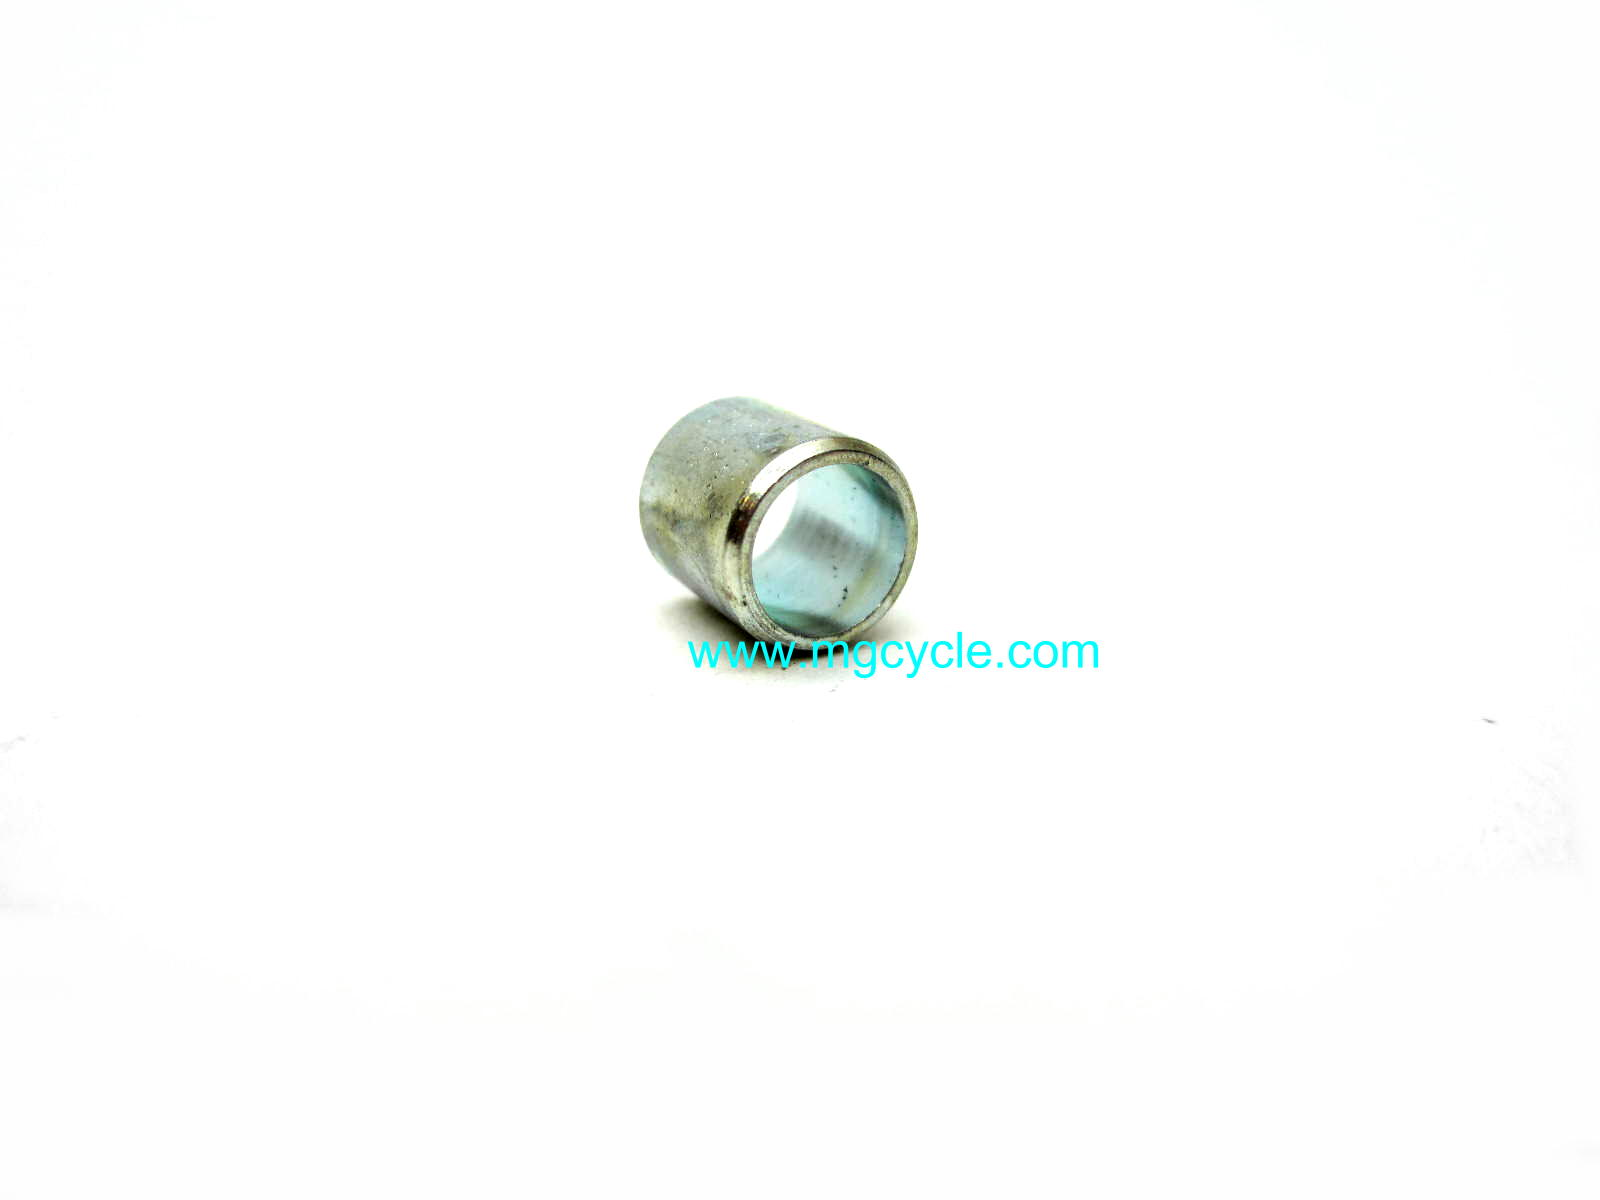 Spacer, sleeve, for rubber grommet, fairing screw, metal